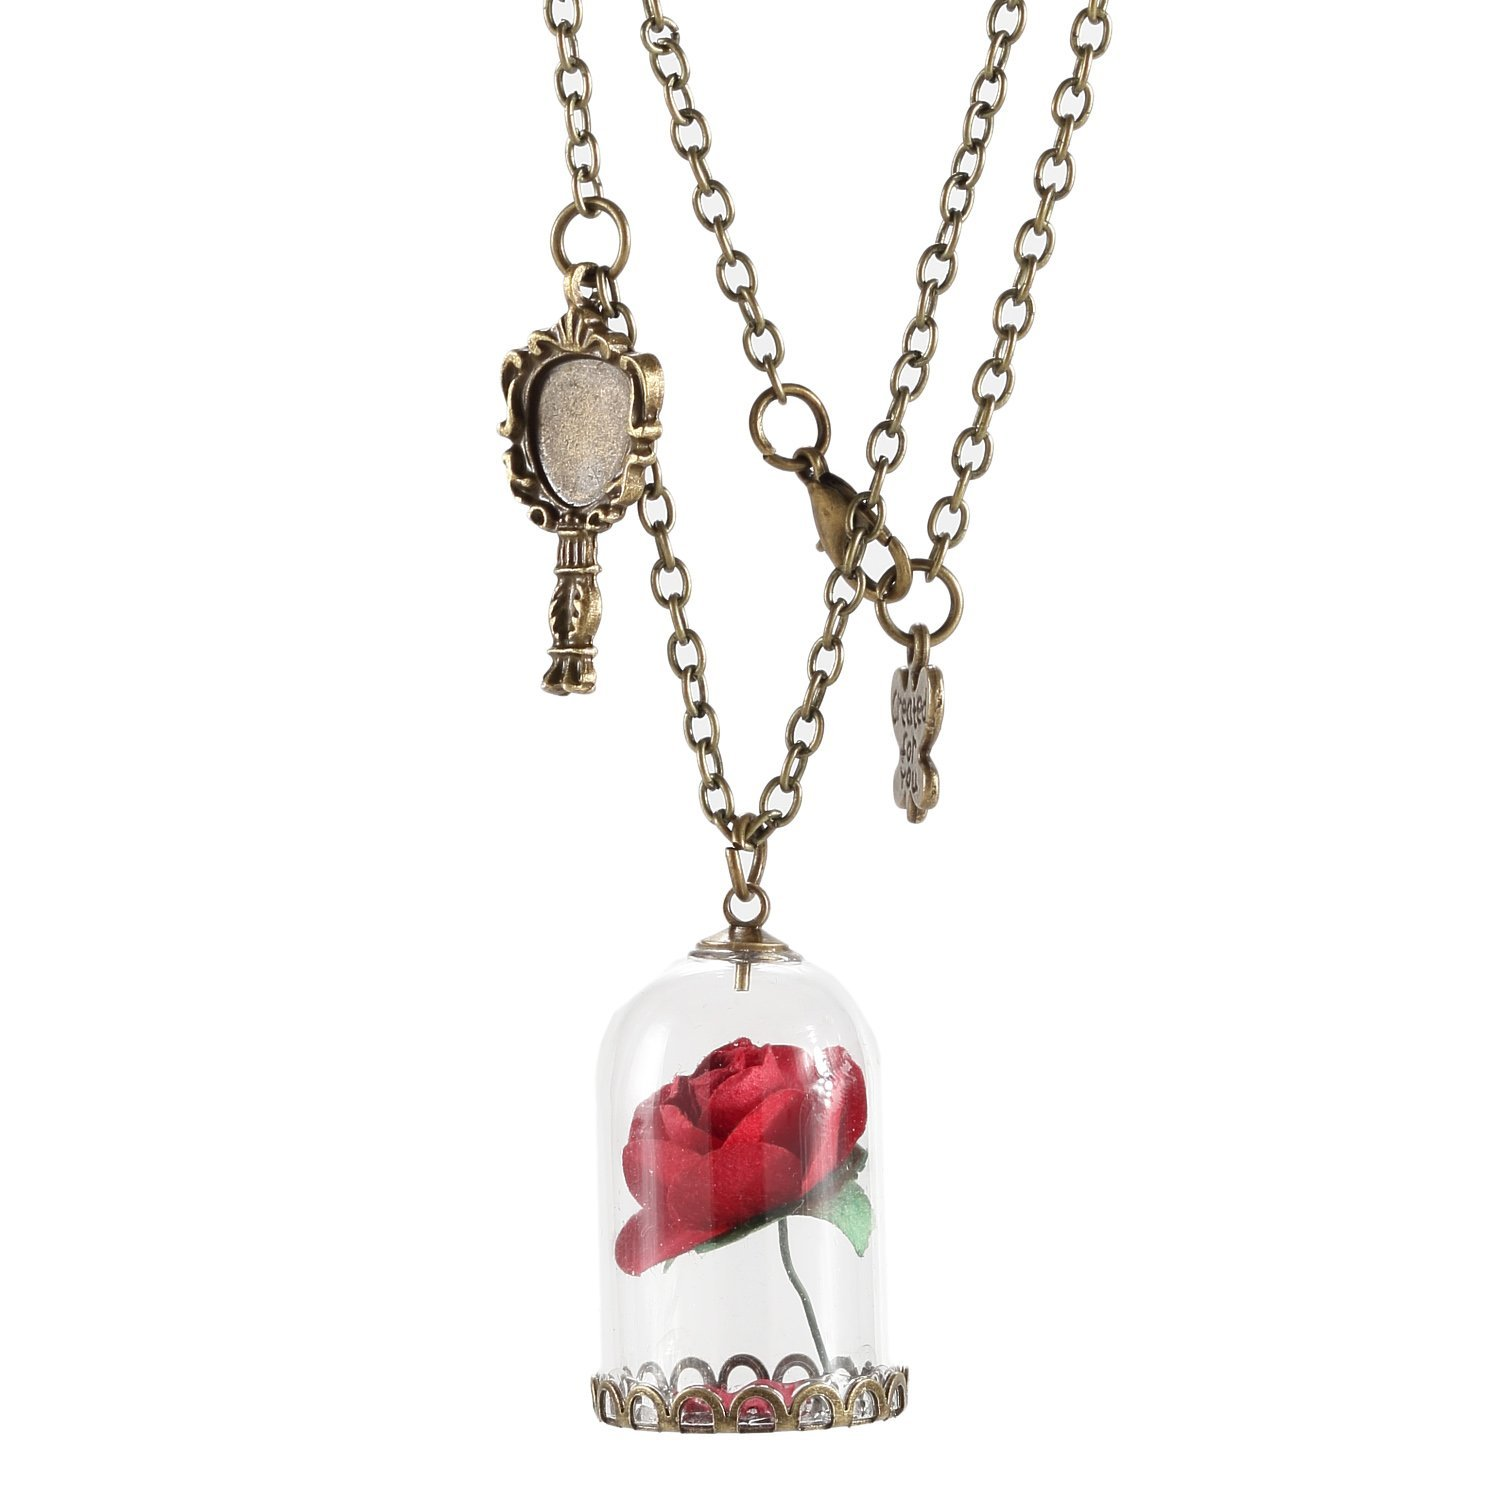 Glass Vial Necklace Jewelry Beauty and the Beast Rose Necklace Festival Gifts by WOFO